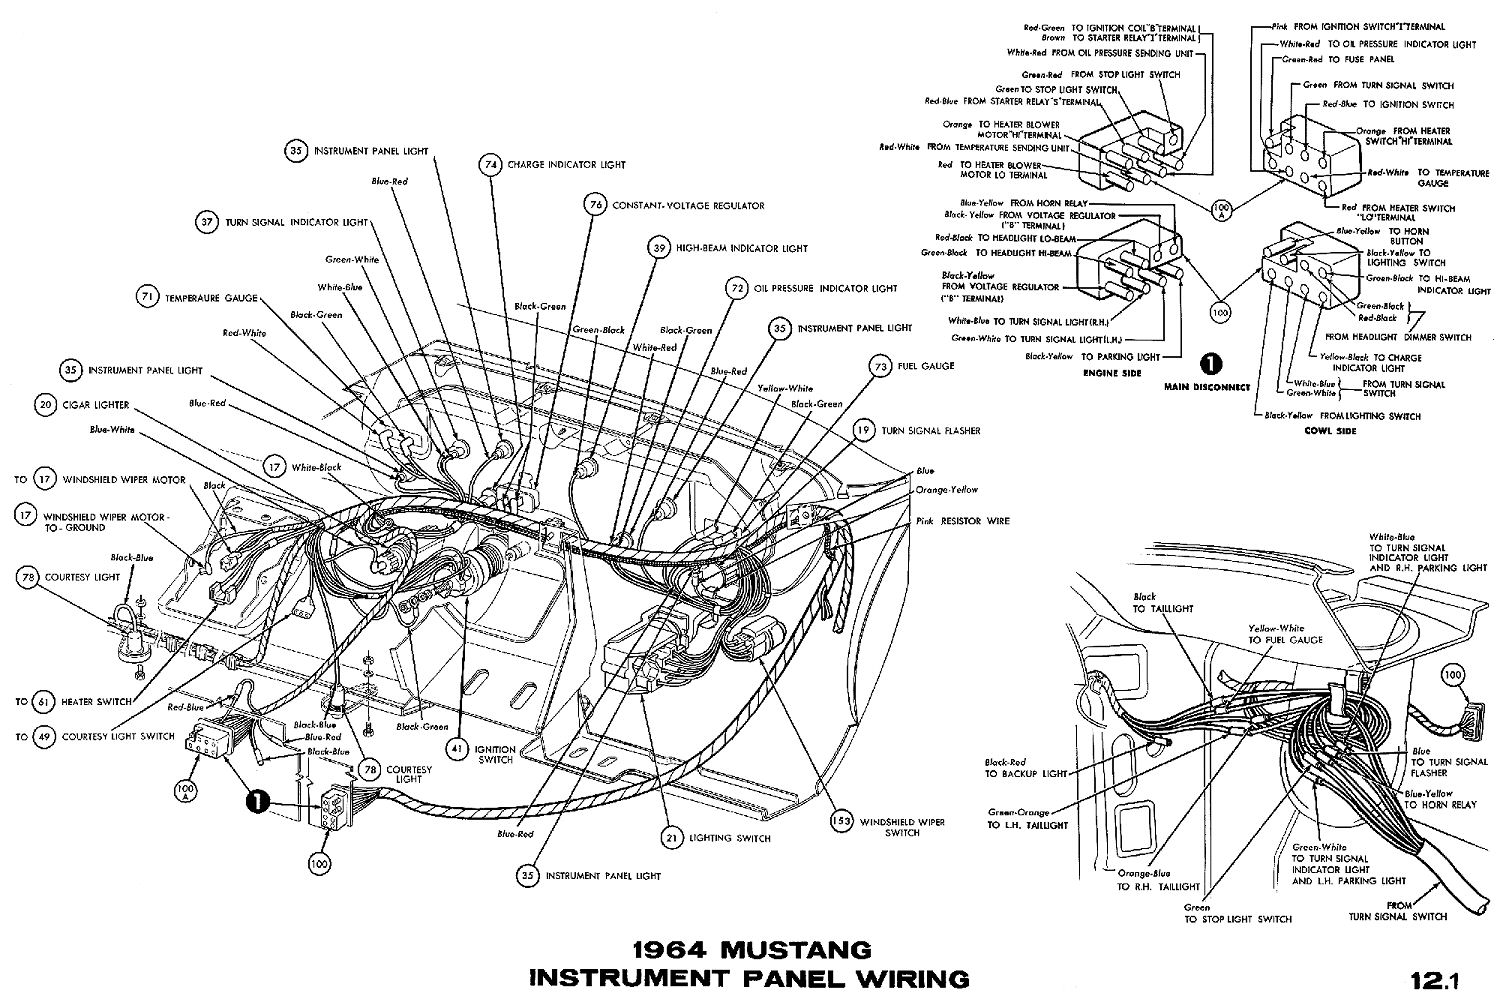 1964 mustang wiring diagrams average joe restoration instrument cluster connections swarovskicordoba Images